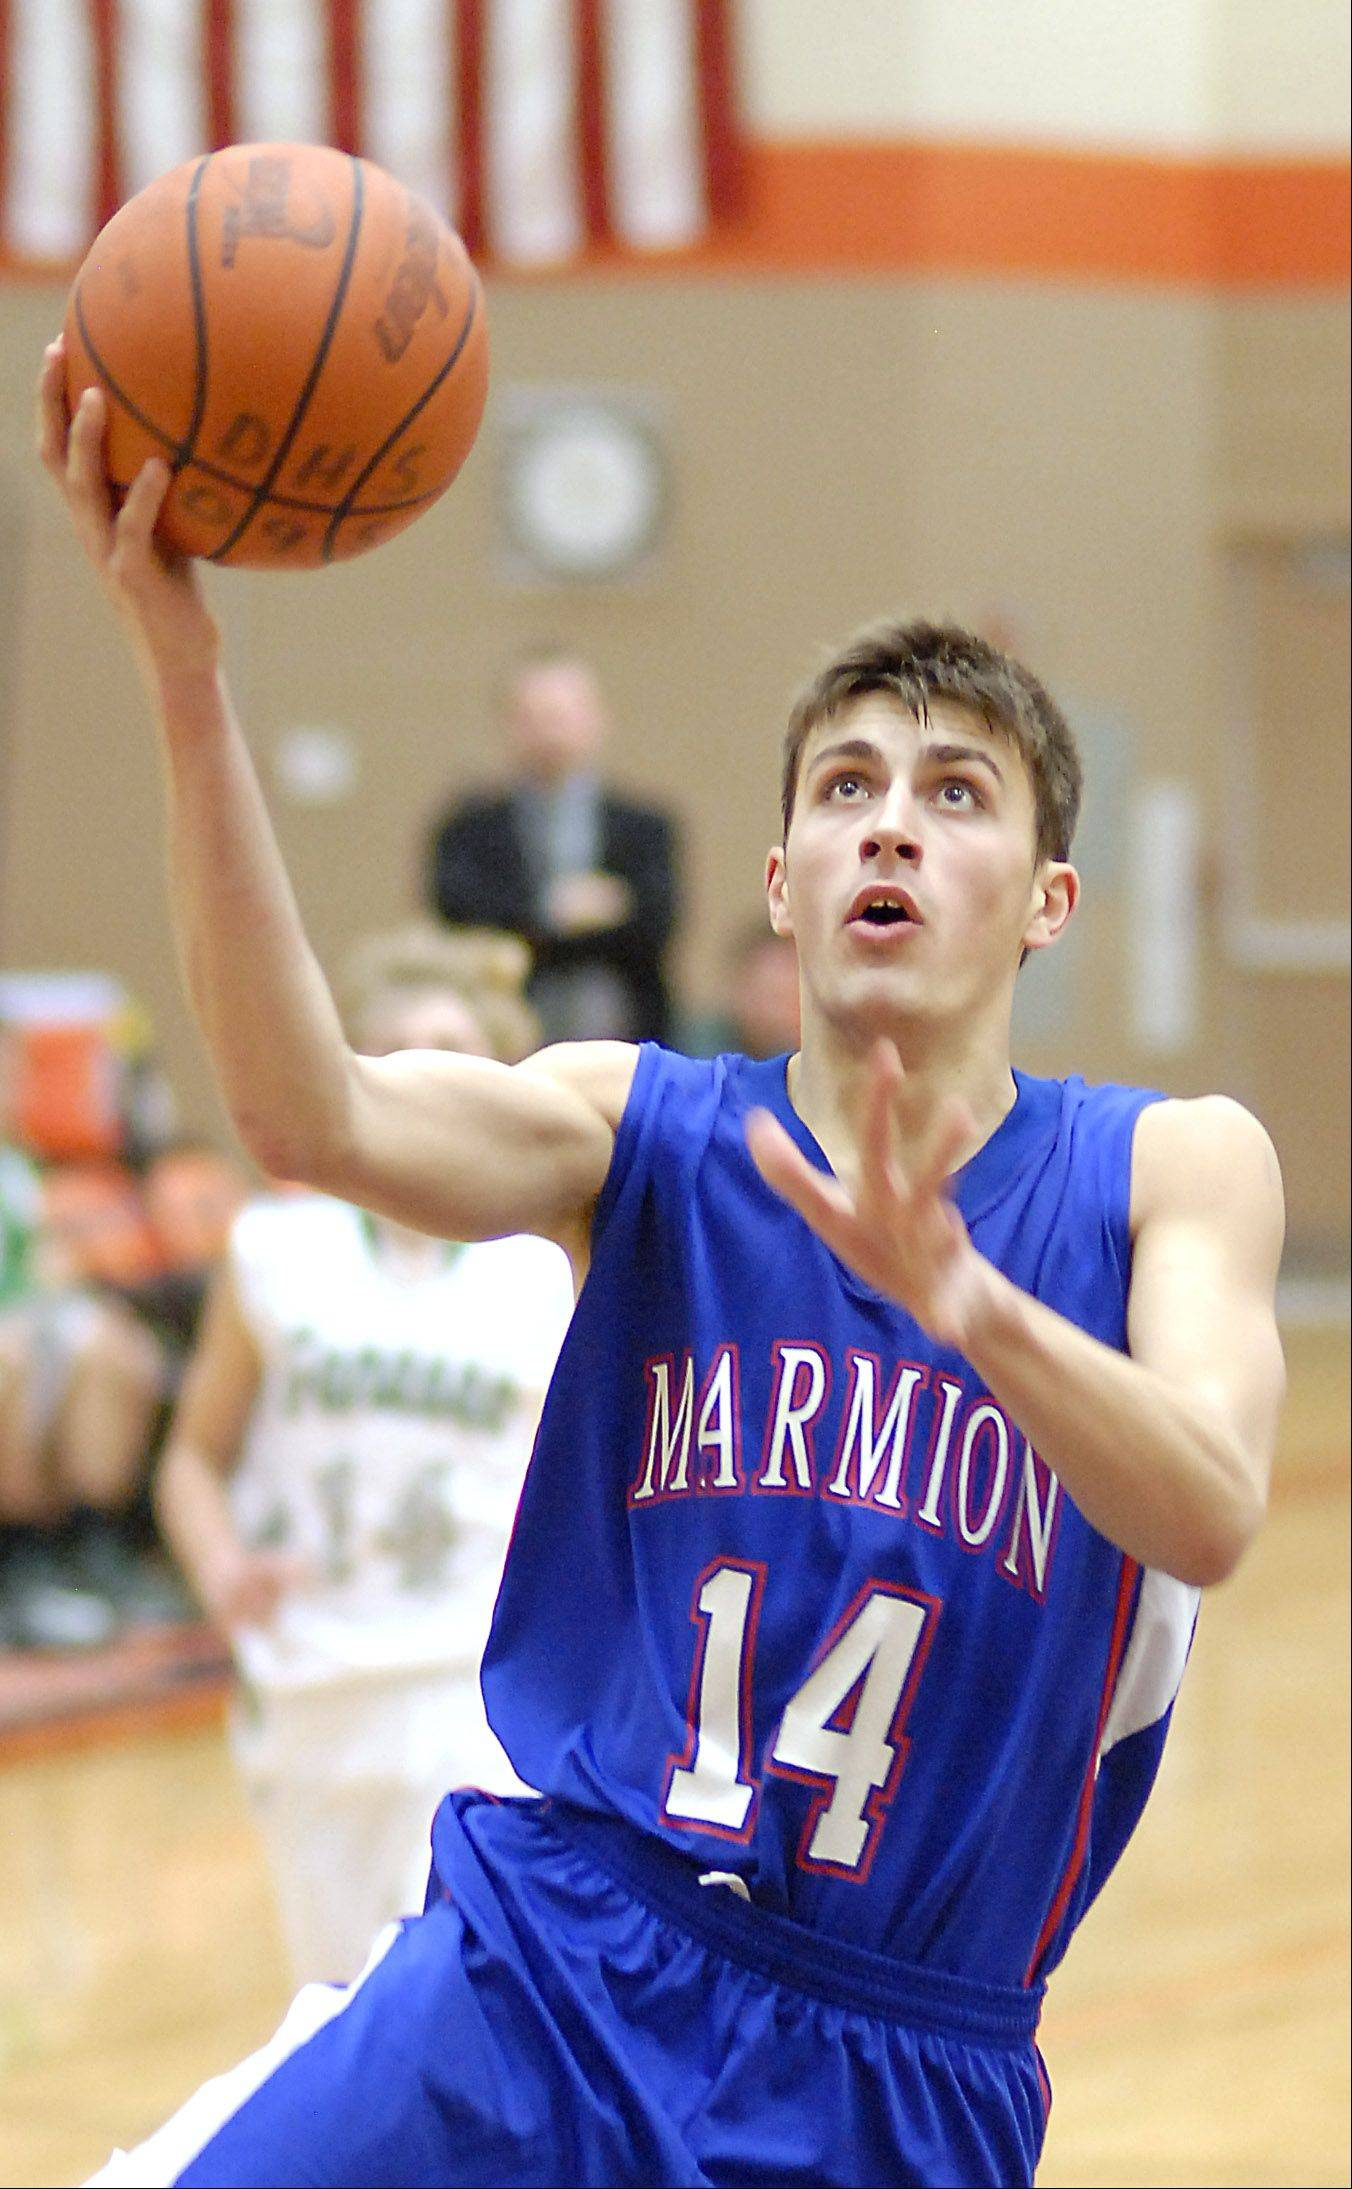 Marmion's Alex Theisen sinks a shot in the fourth quarter of the DeKalb tournament on Saturday, December 22.